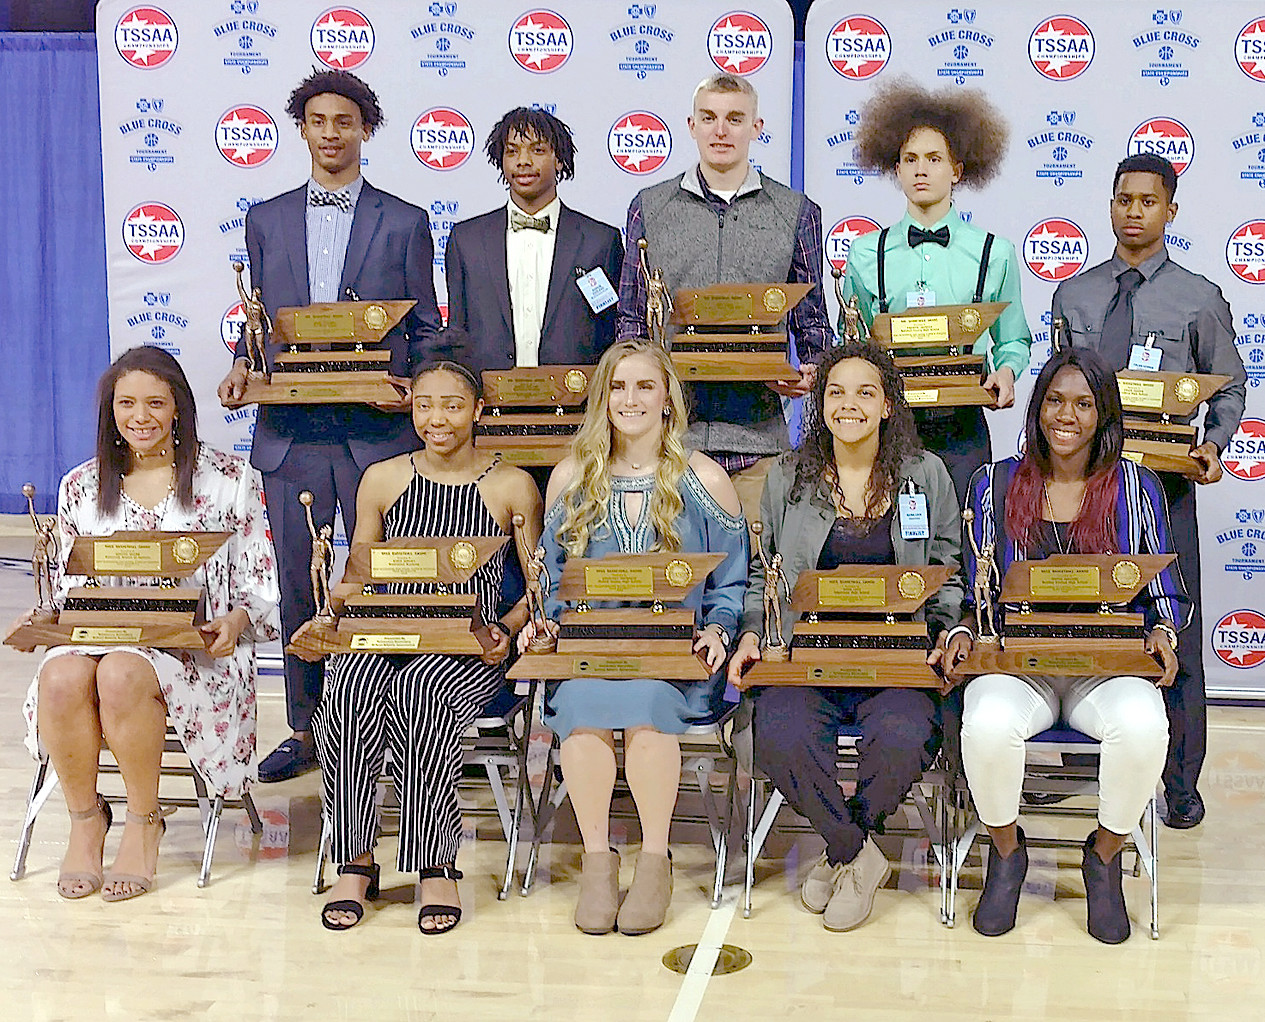 MR. AND MISS BASKETBALL winners pose with their awards in the MTSU Murphy Center on Tuesday evening. Bradley's Rhyne Howard (in the front row at far right) has been on a tear, averaging over 29 points per game this postseason as her team looks to make a run to the state finals this week.